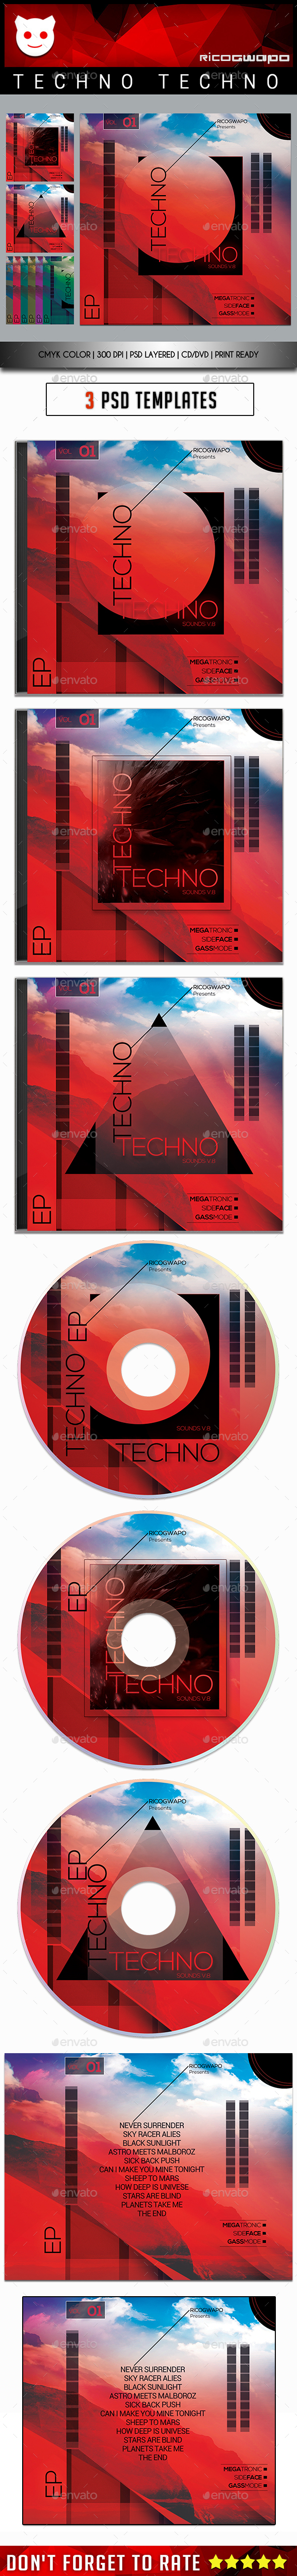 Techno Techno Cd/DVD Template - CD & DVD Artwork Print Templates